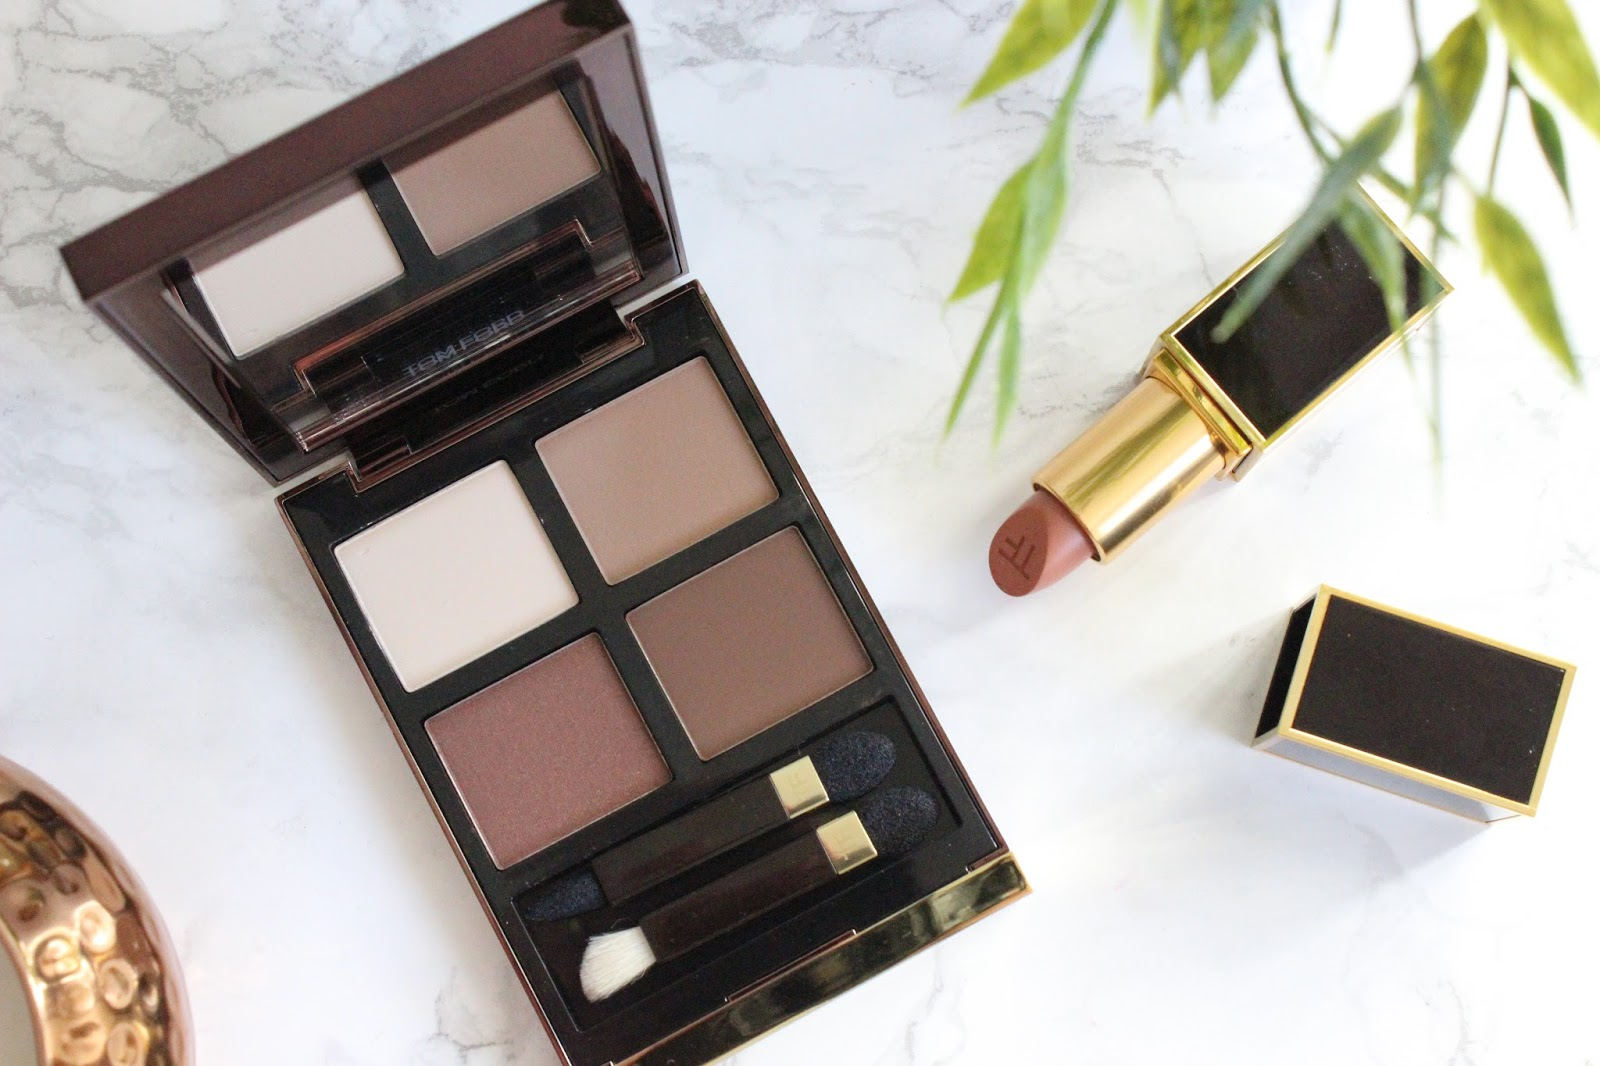 Tom Ford Eyeshadow Quad in Cocoa Mirage